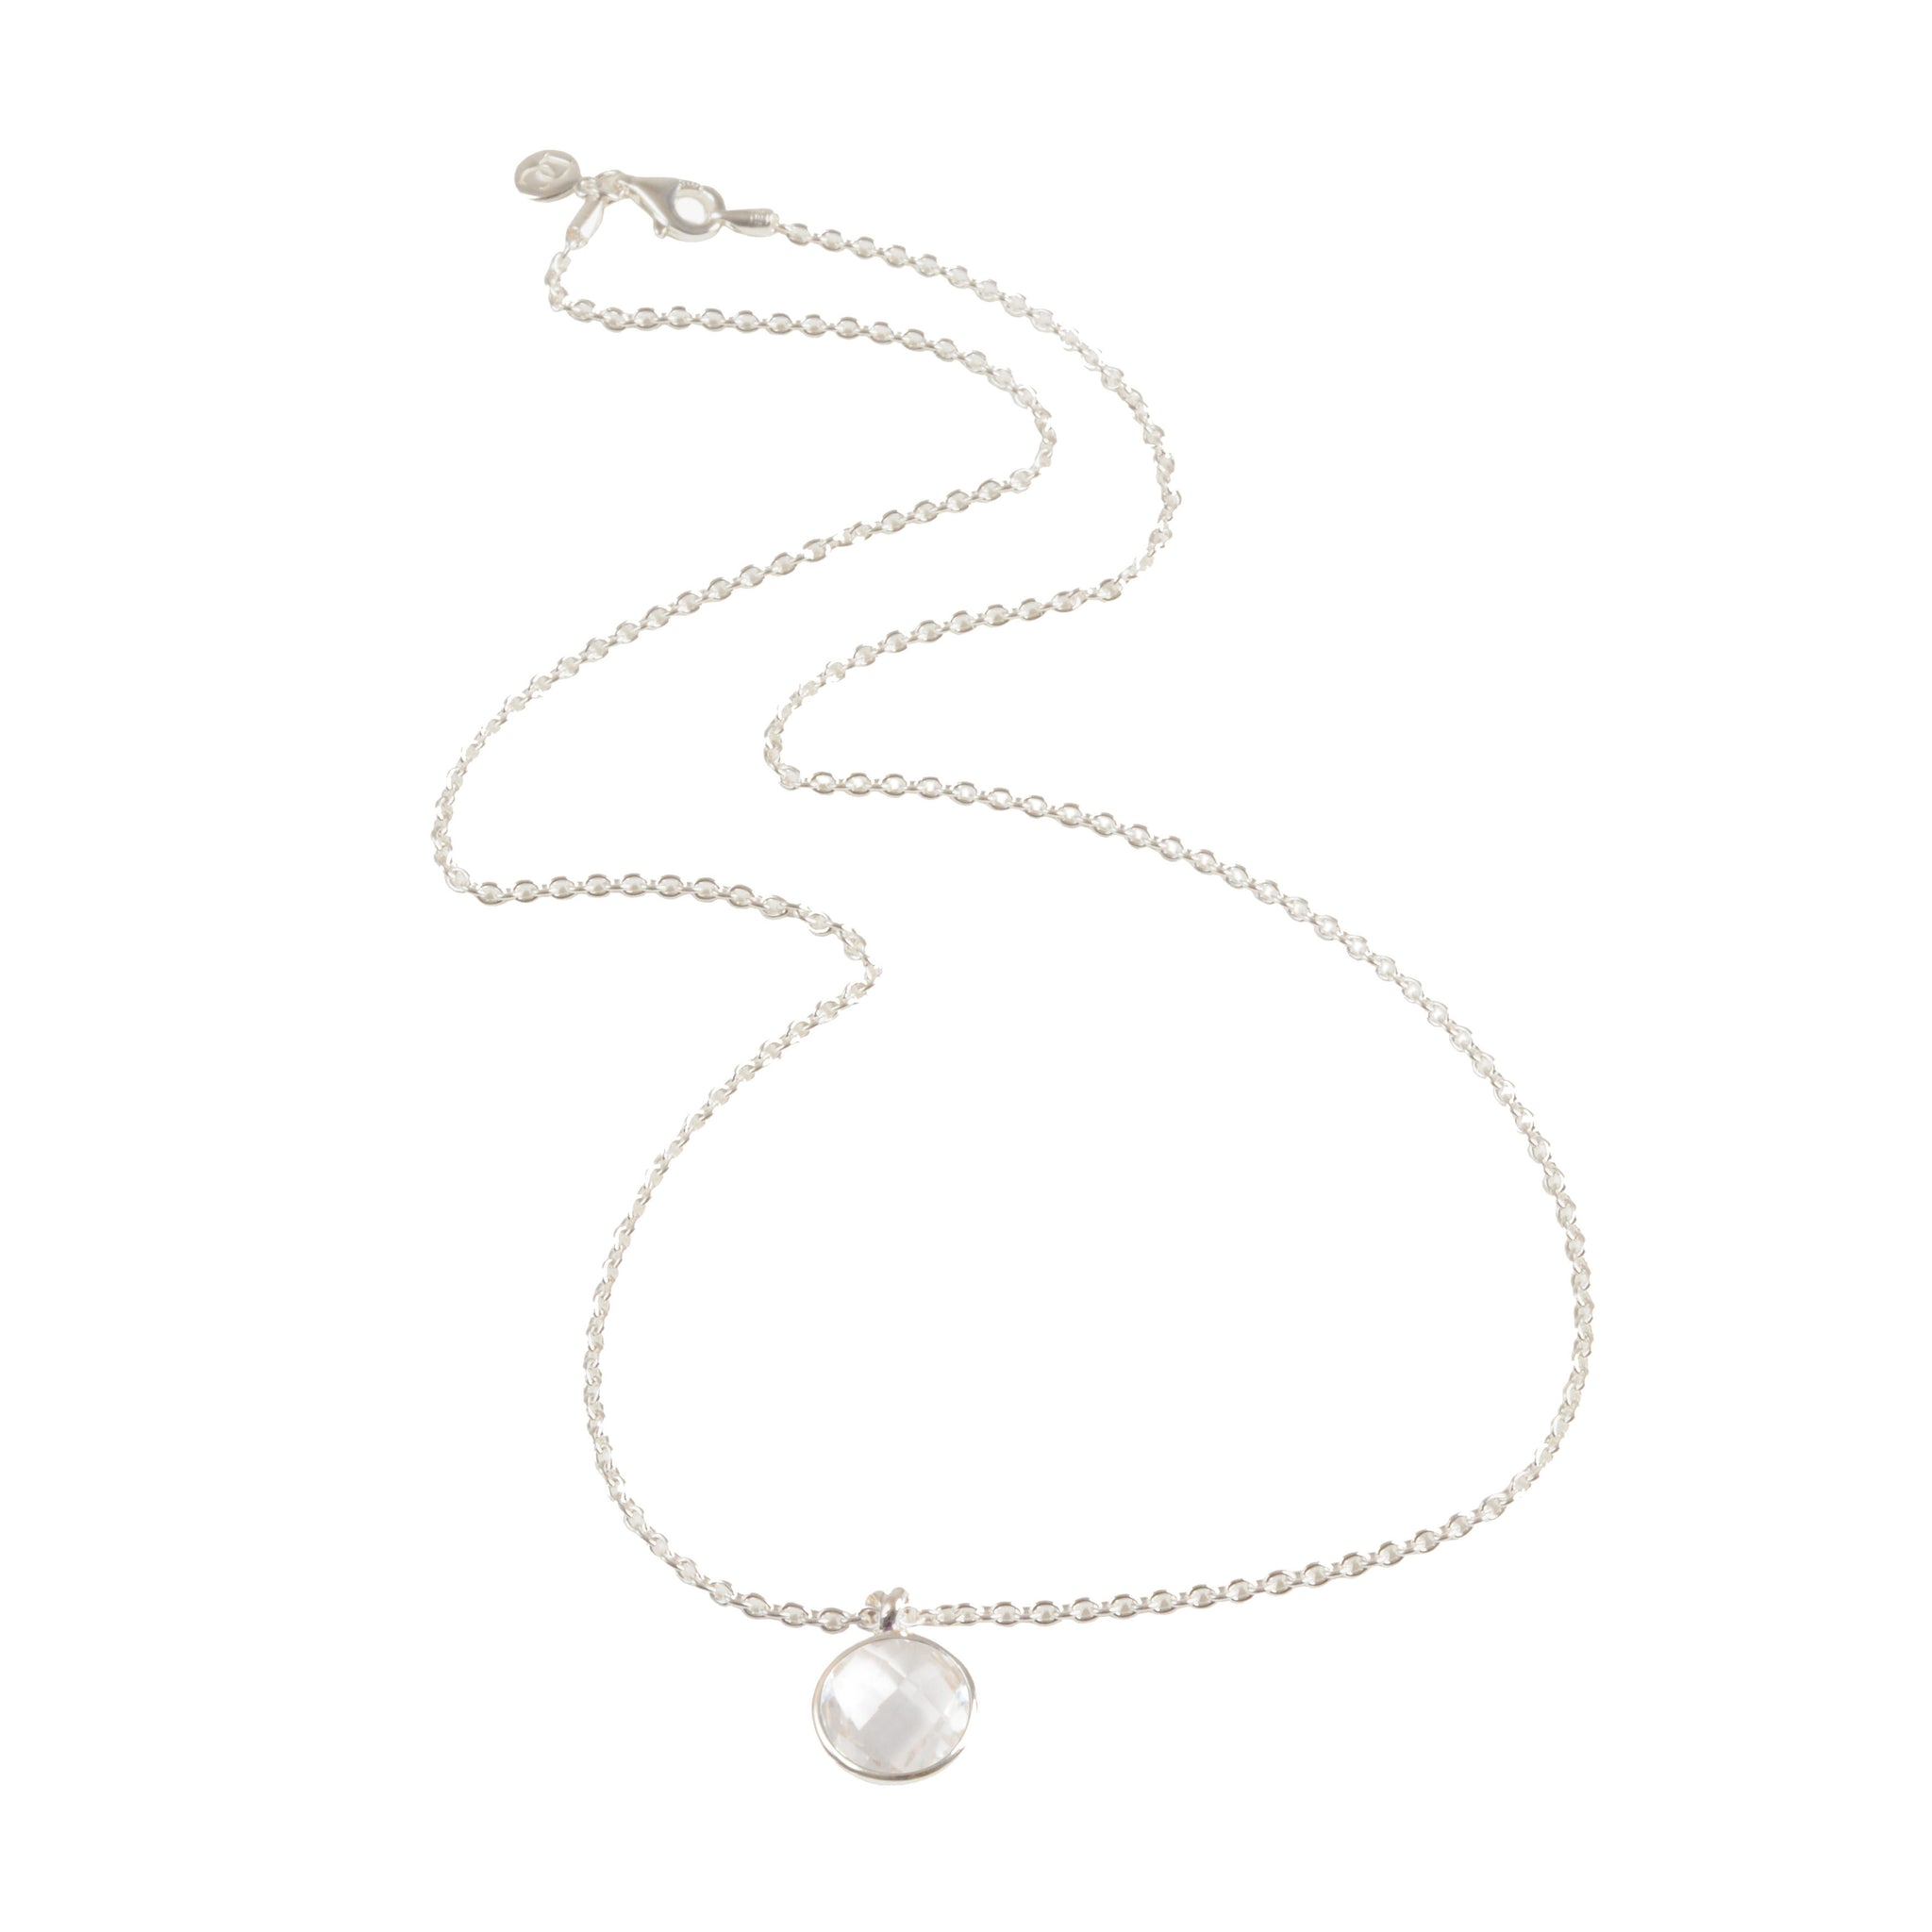 DAVINA COMBE - KNOT DROP NECKLACE WITH ROCK CRYSTAL